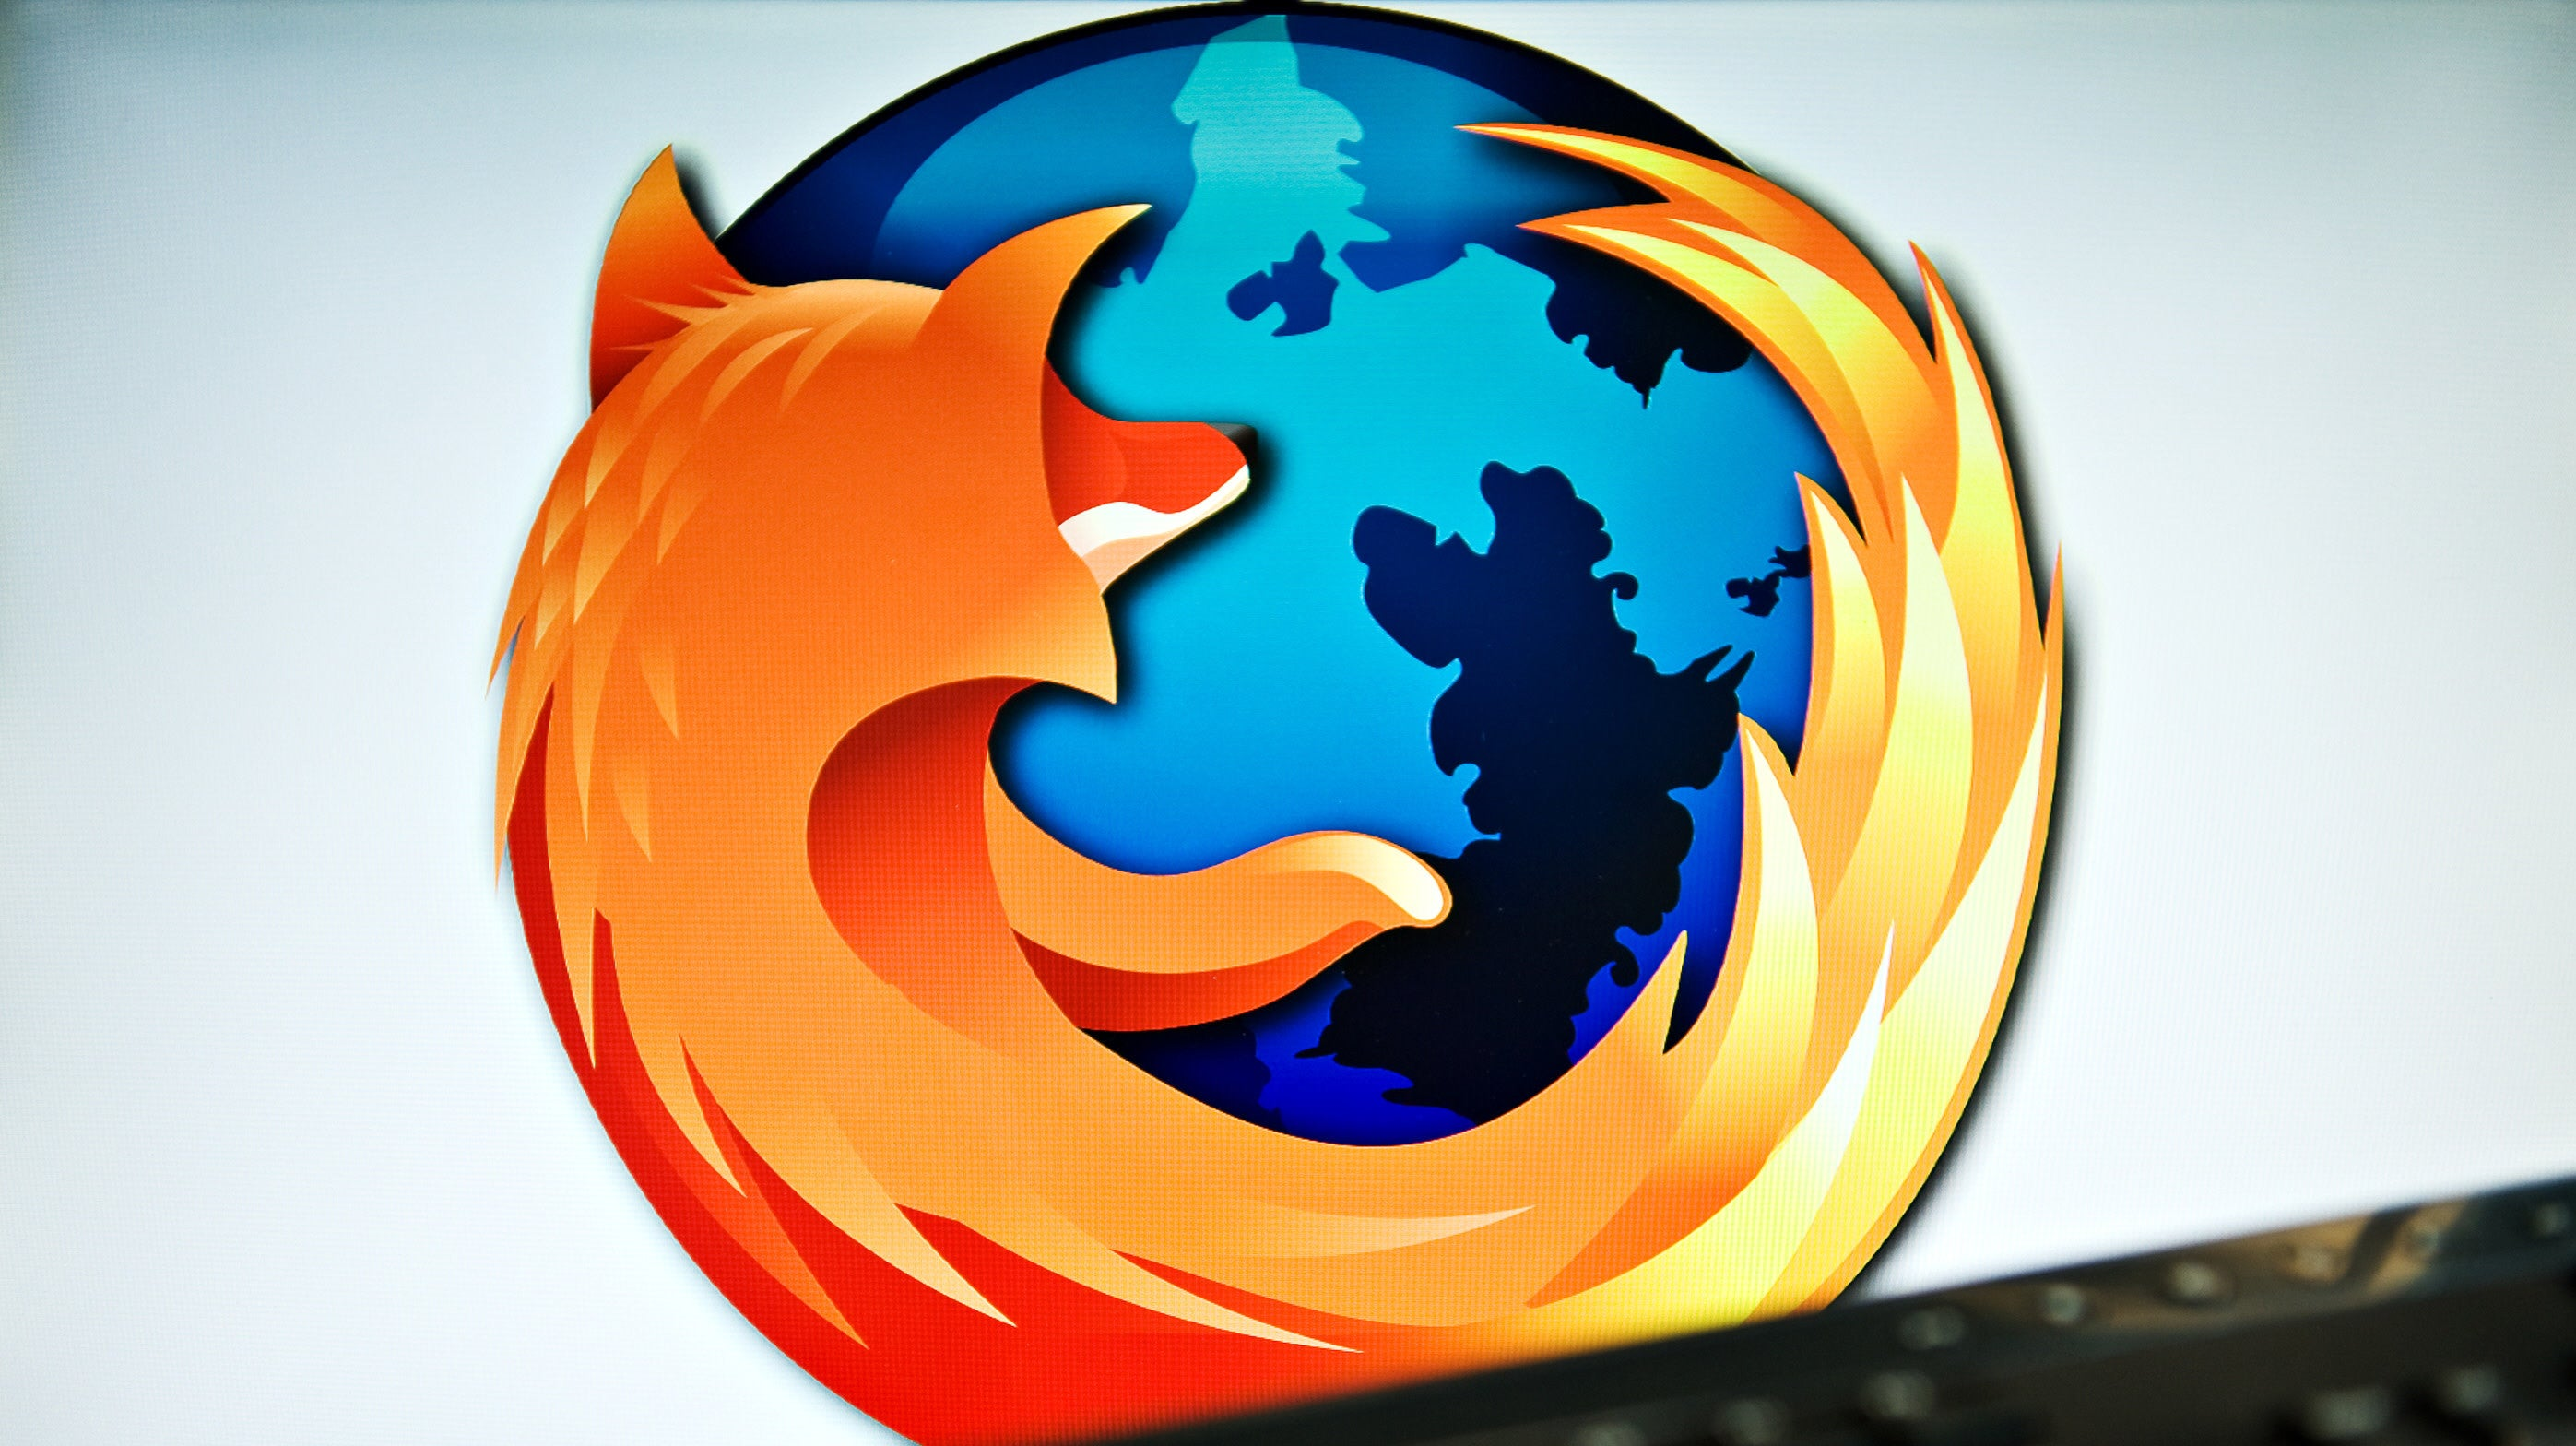 Mozilla Rolls Out Encrypted Browsing By Default For U.S. Firefox Users